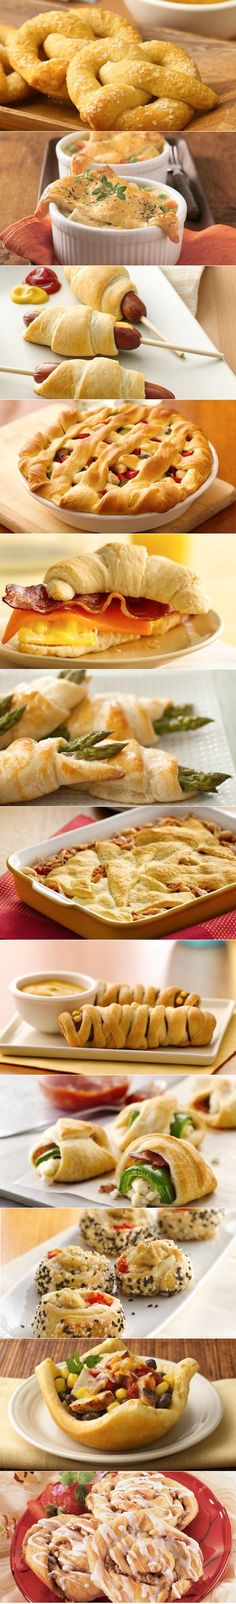 Cool Crescent Roll Recipes. I love it when it's easy!